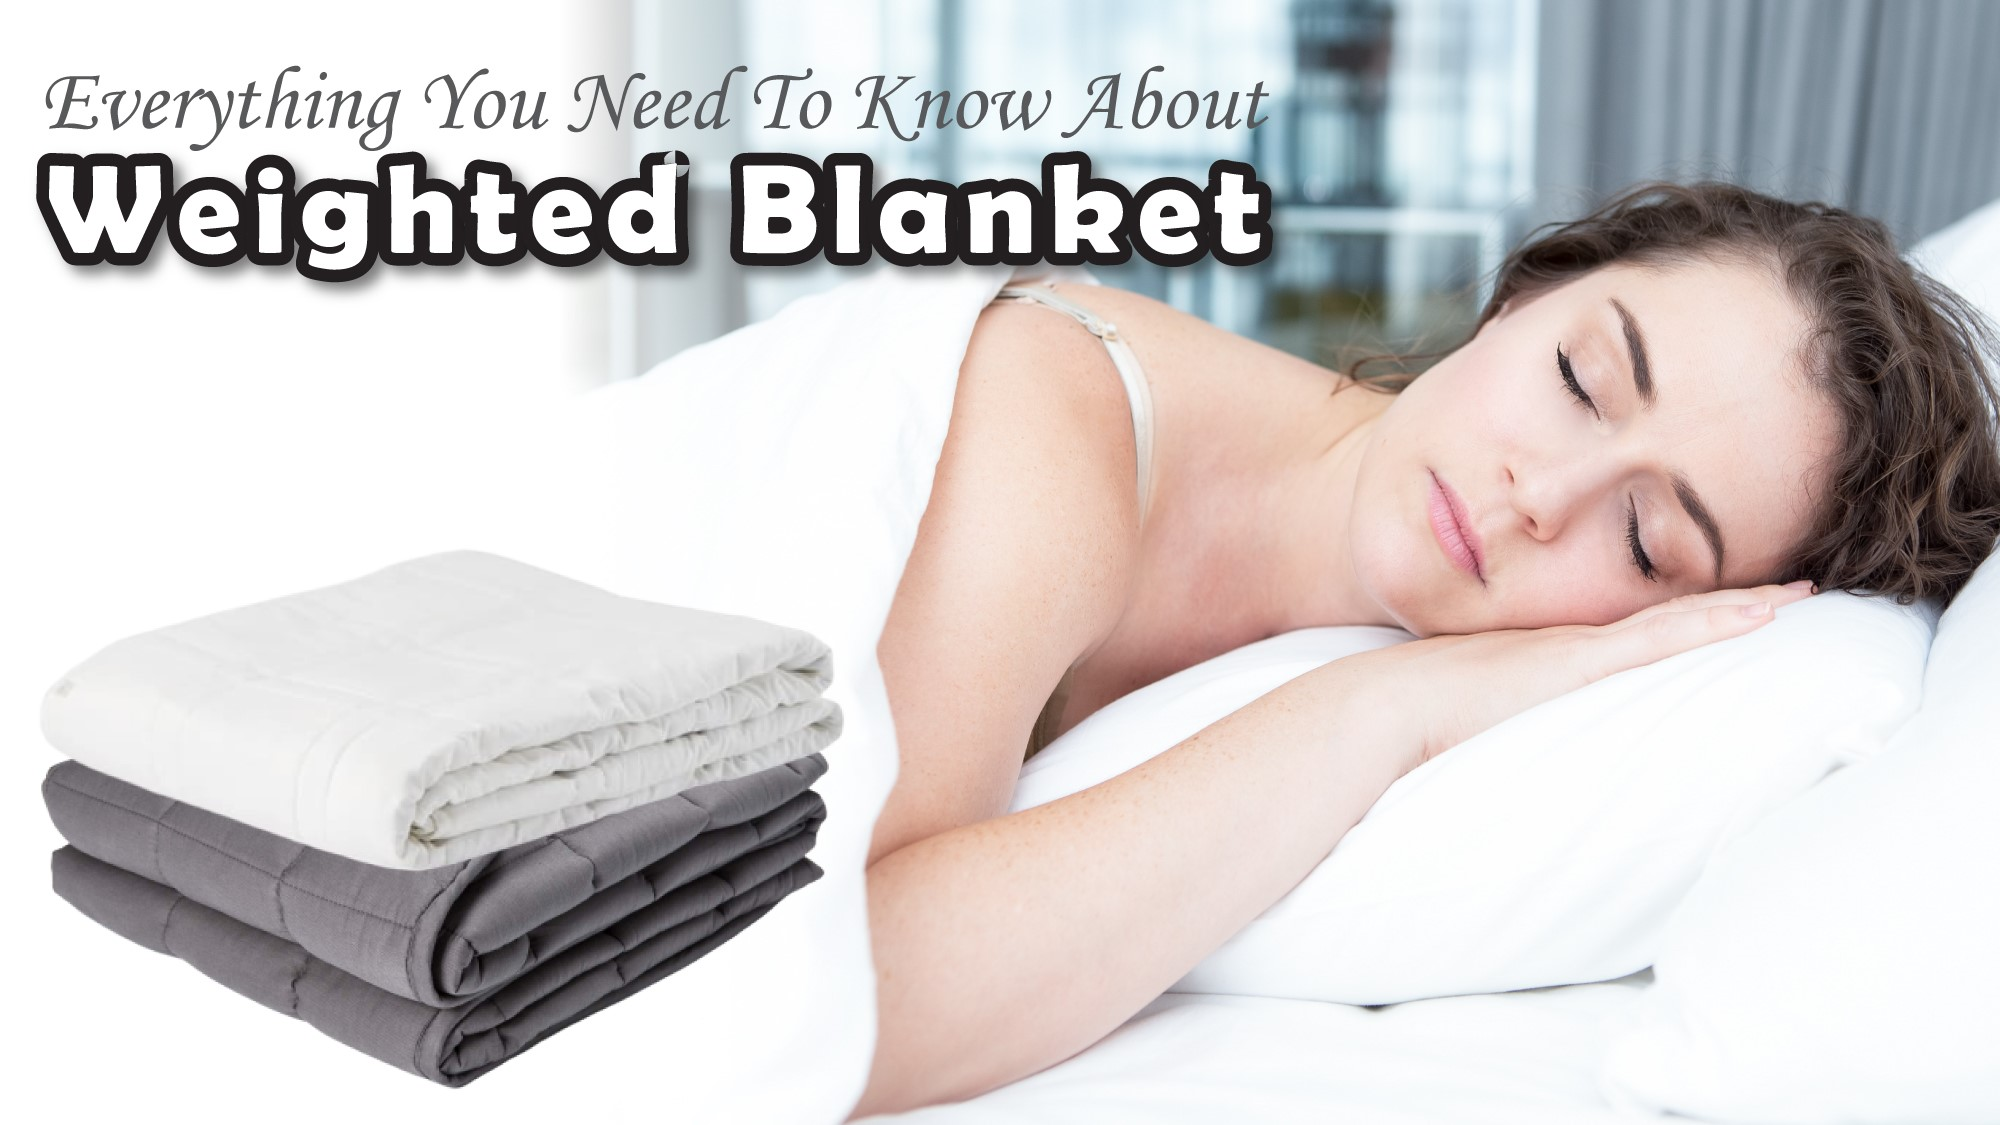 Everything You Need To Know About Weighted Blanket